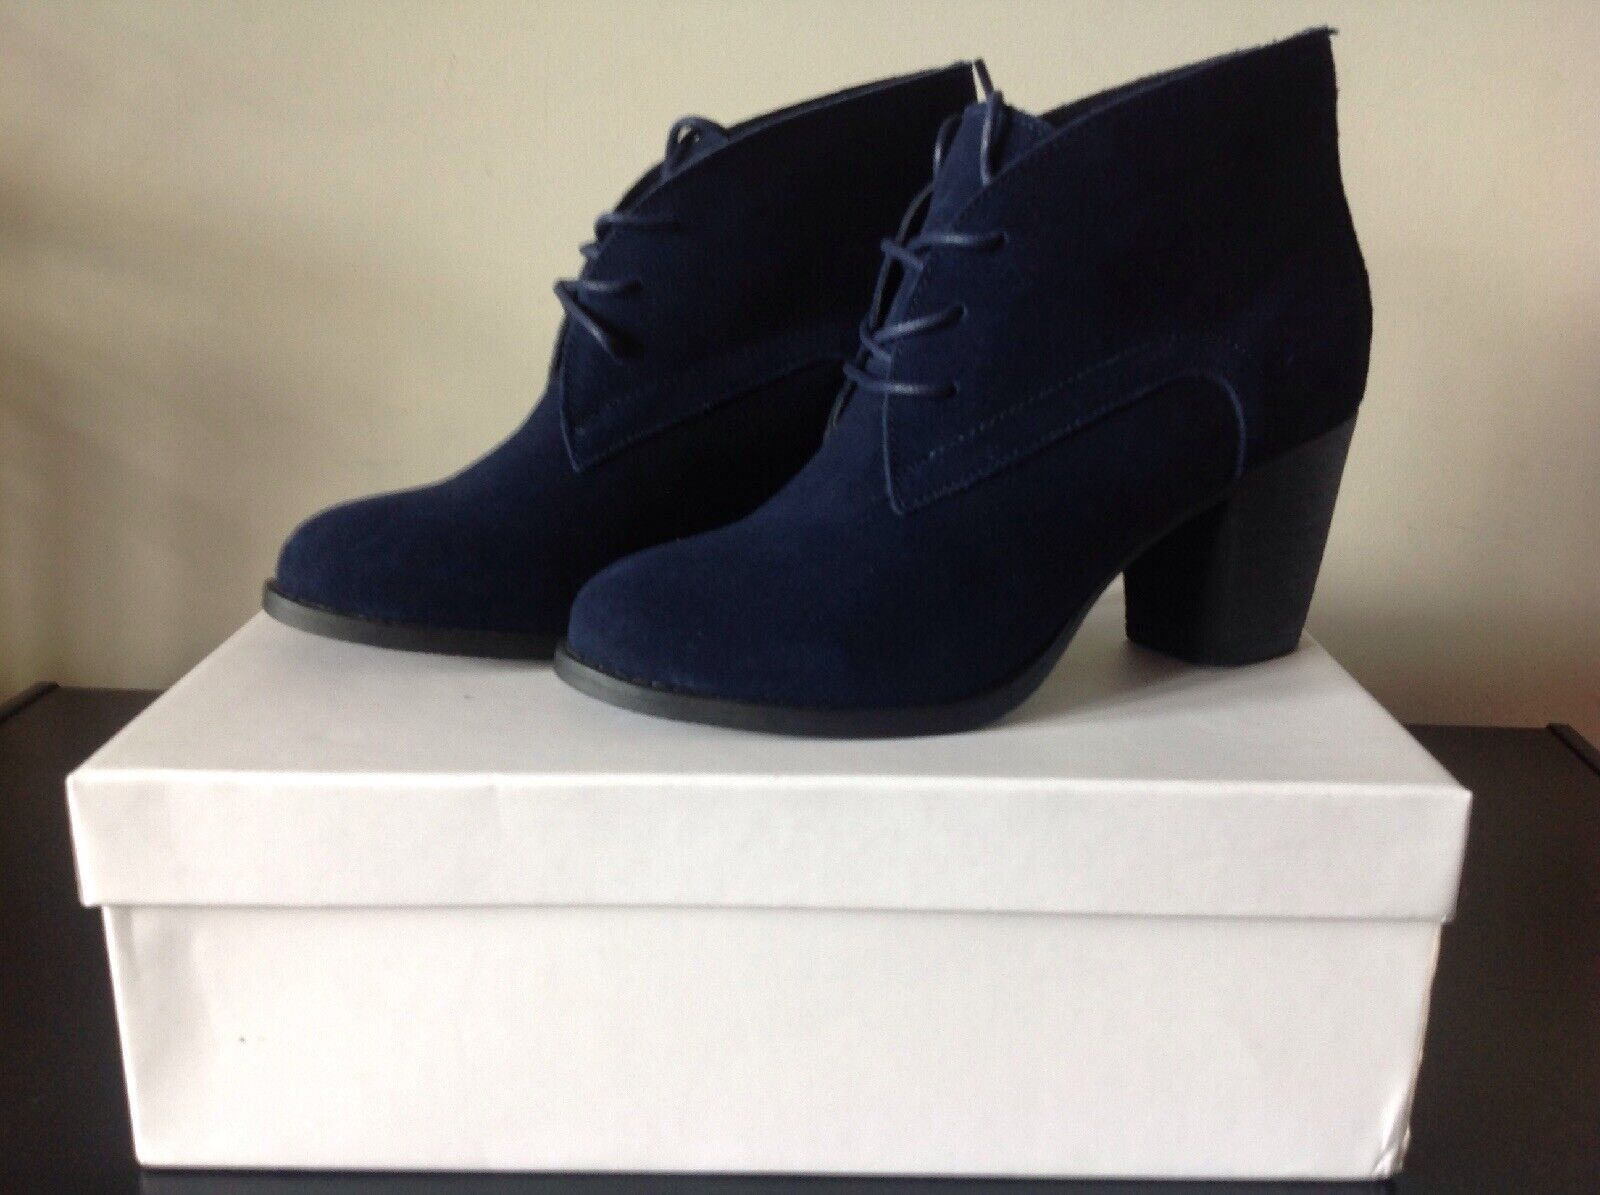 MODA & PELLE PELLE PELLE BILIST NAVY SUEDE LACE UP DERBY BOOT UK5 BNIB e4564e